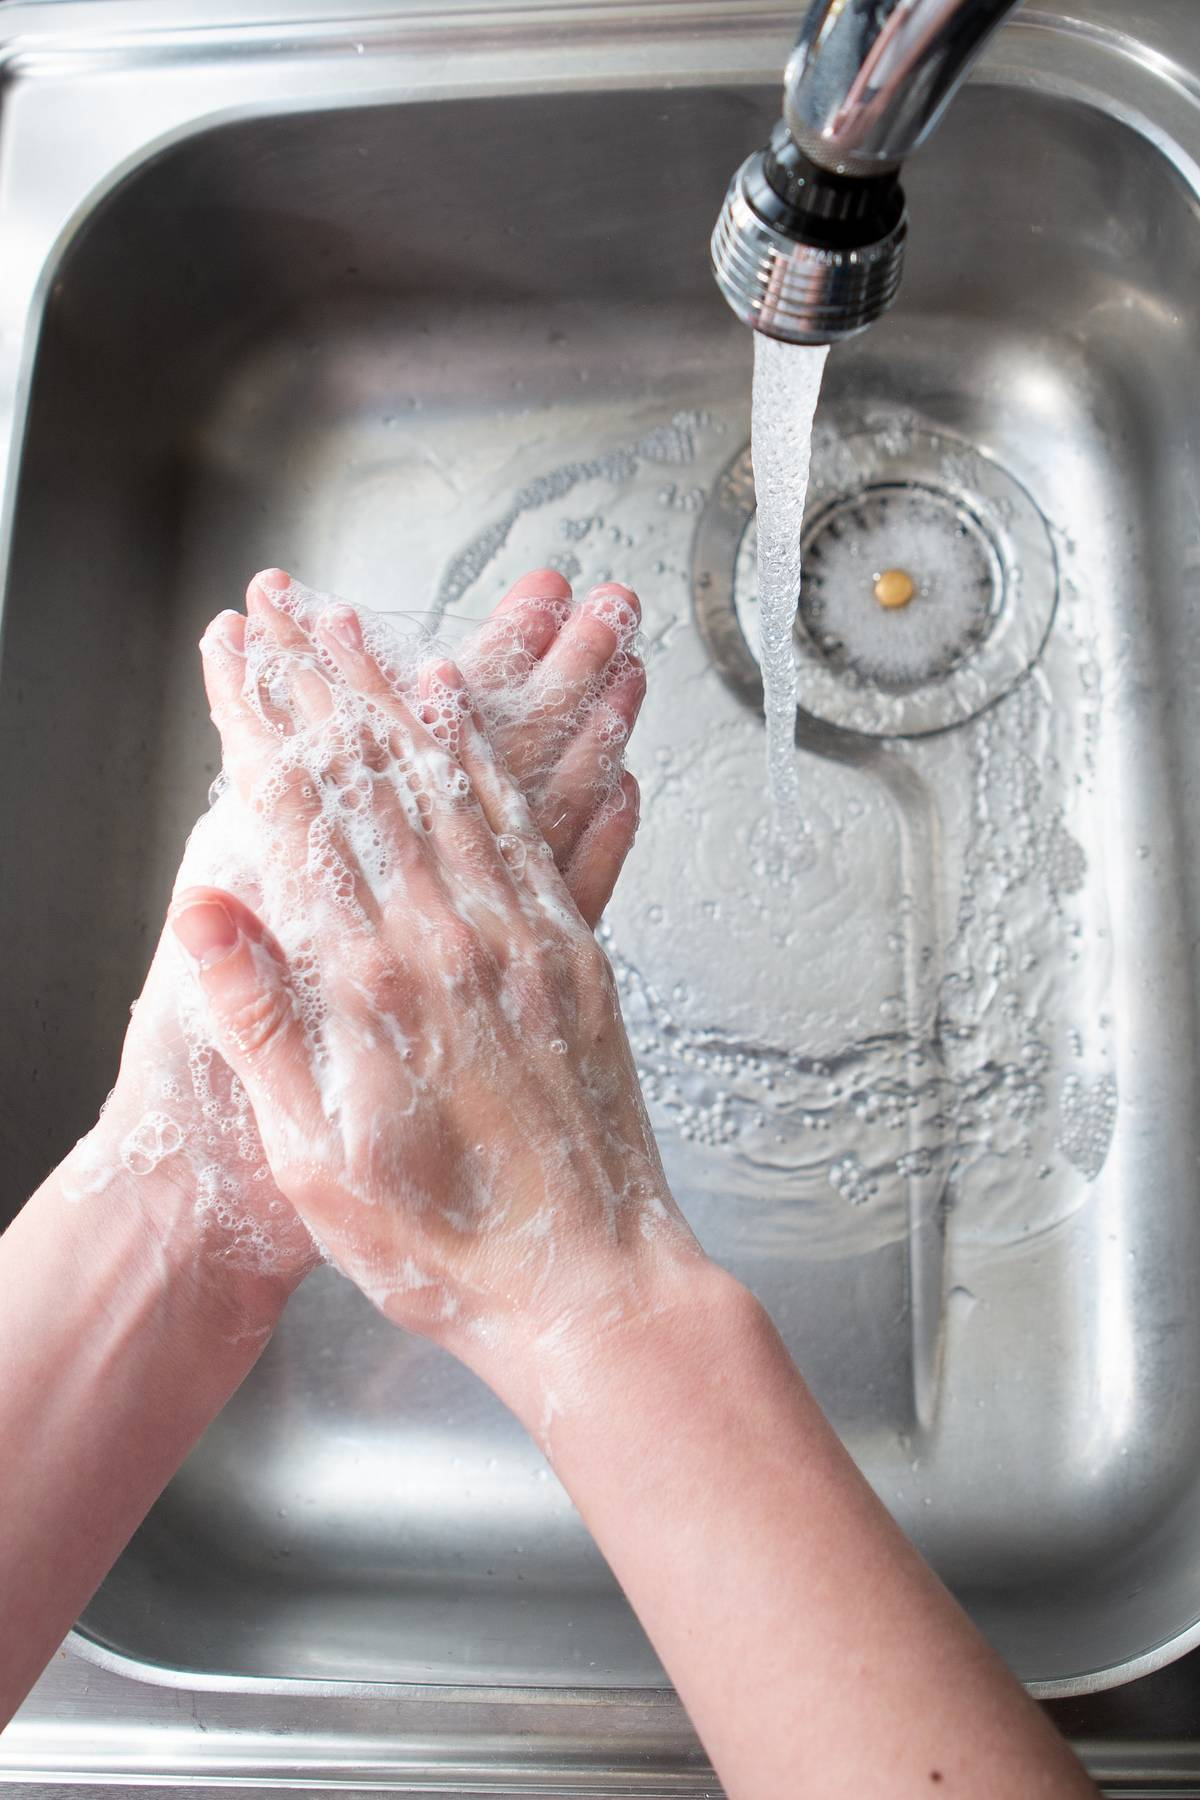 A person washes her hands in the sink.